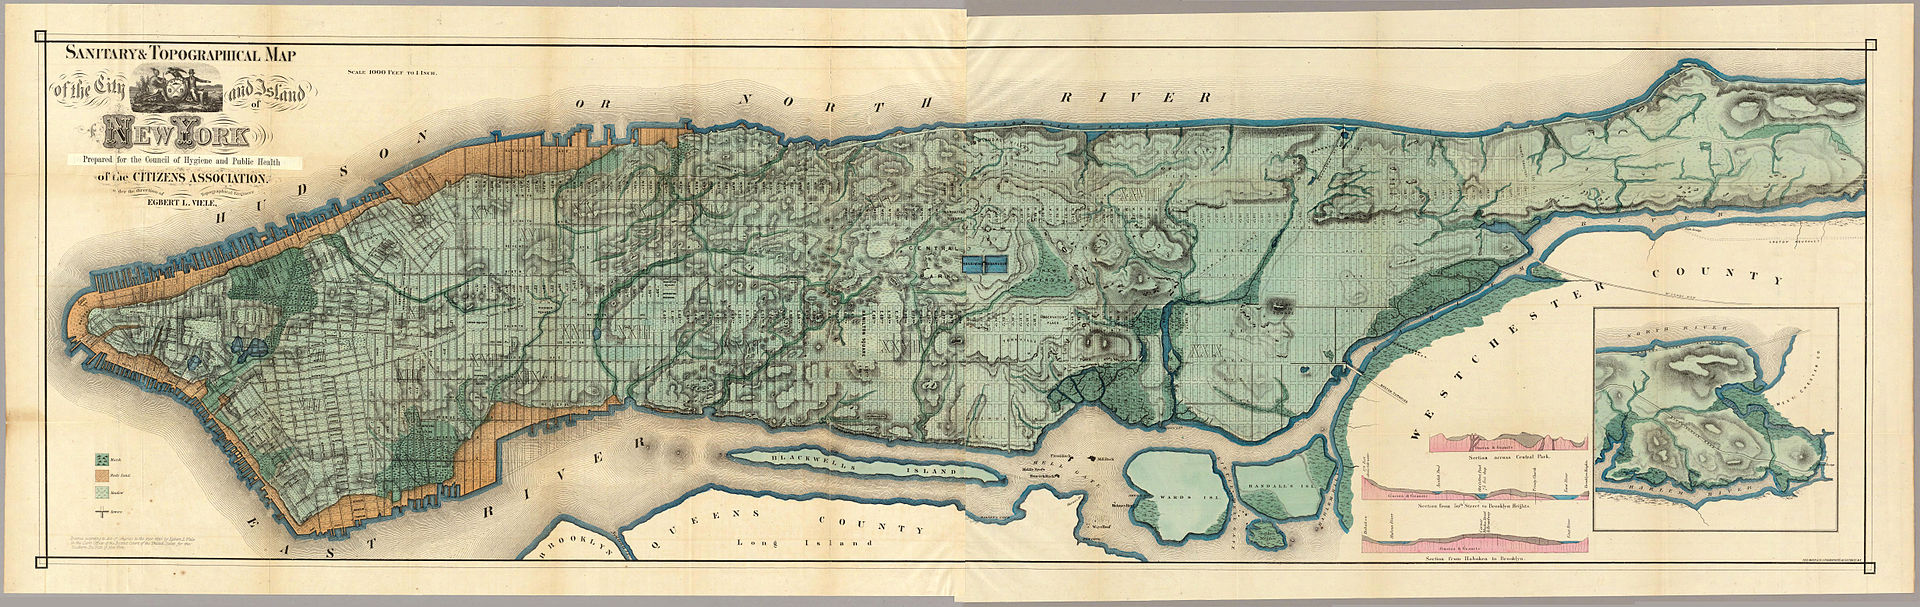 Sanitary and Topographical Map_Egbert Ludovicus Viele_Map_1865.jpg